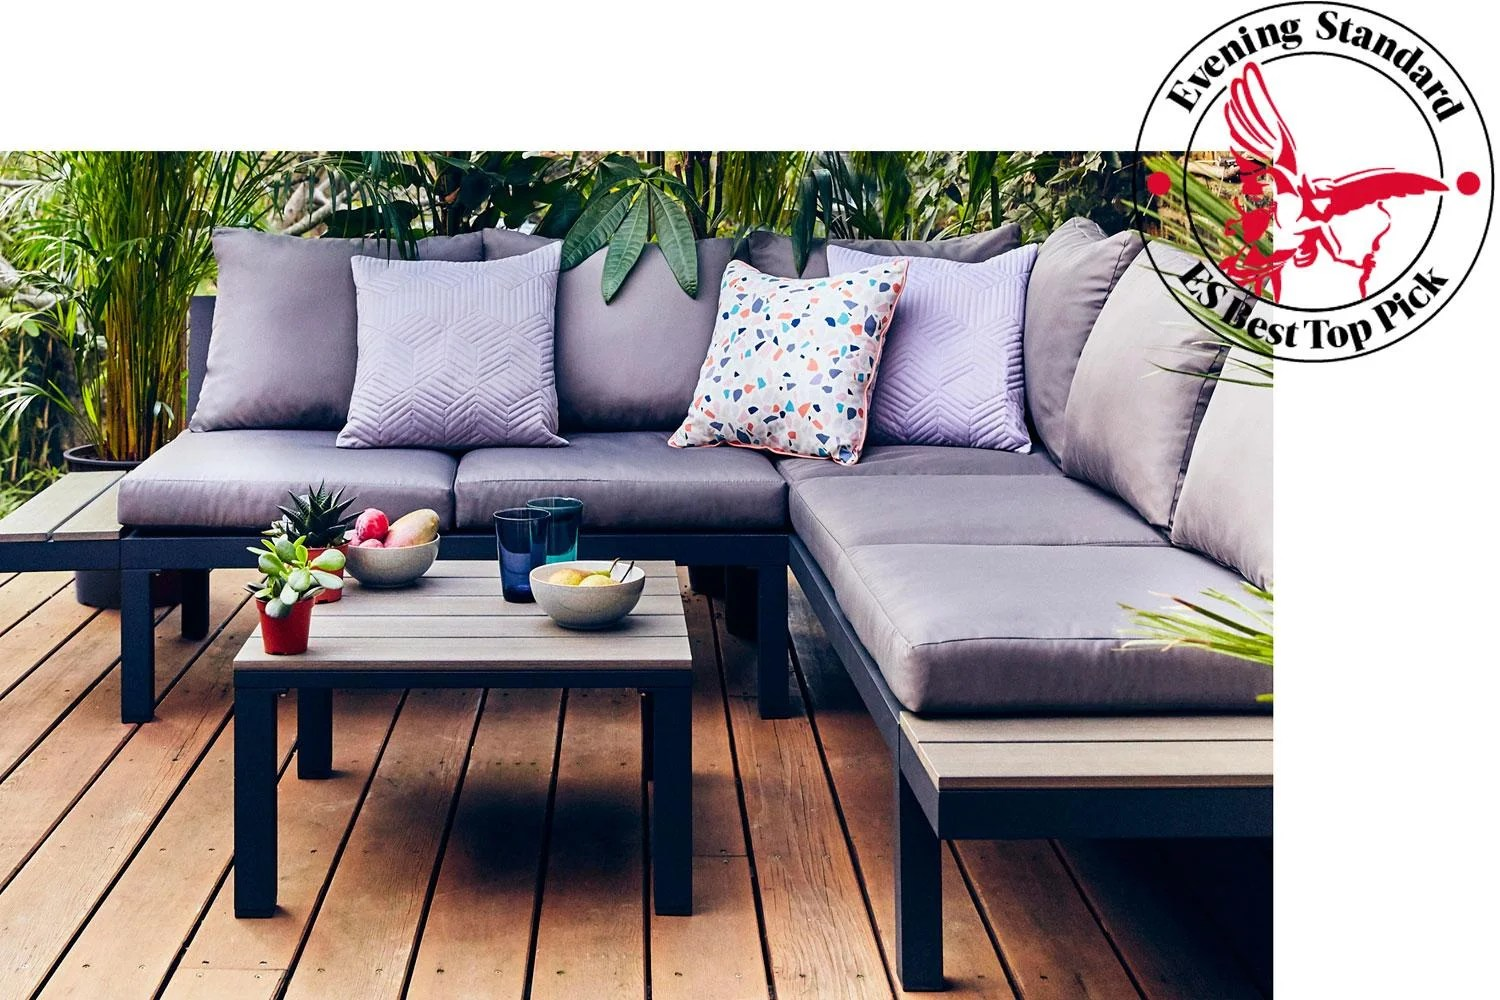 The Big Sofa London Best Garden Furniture 2019 London Evening Standard